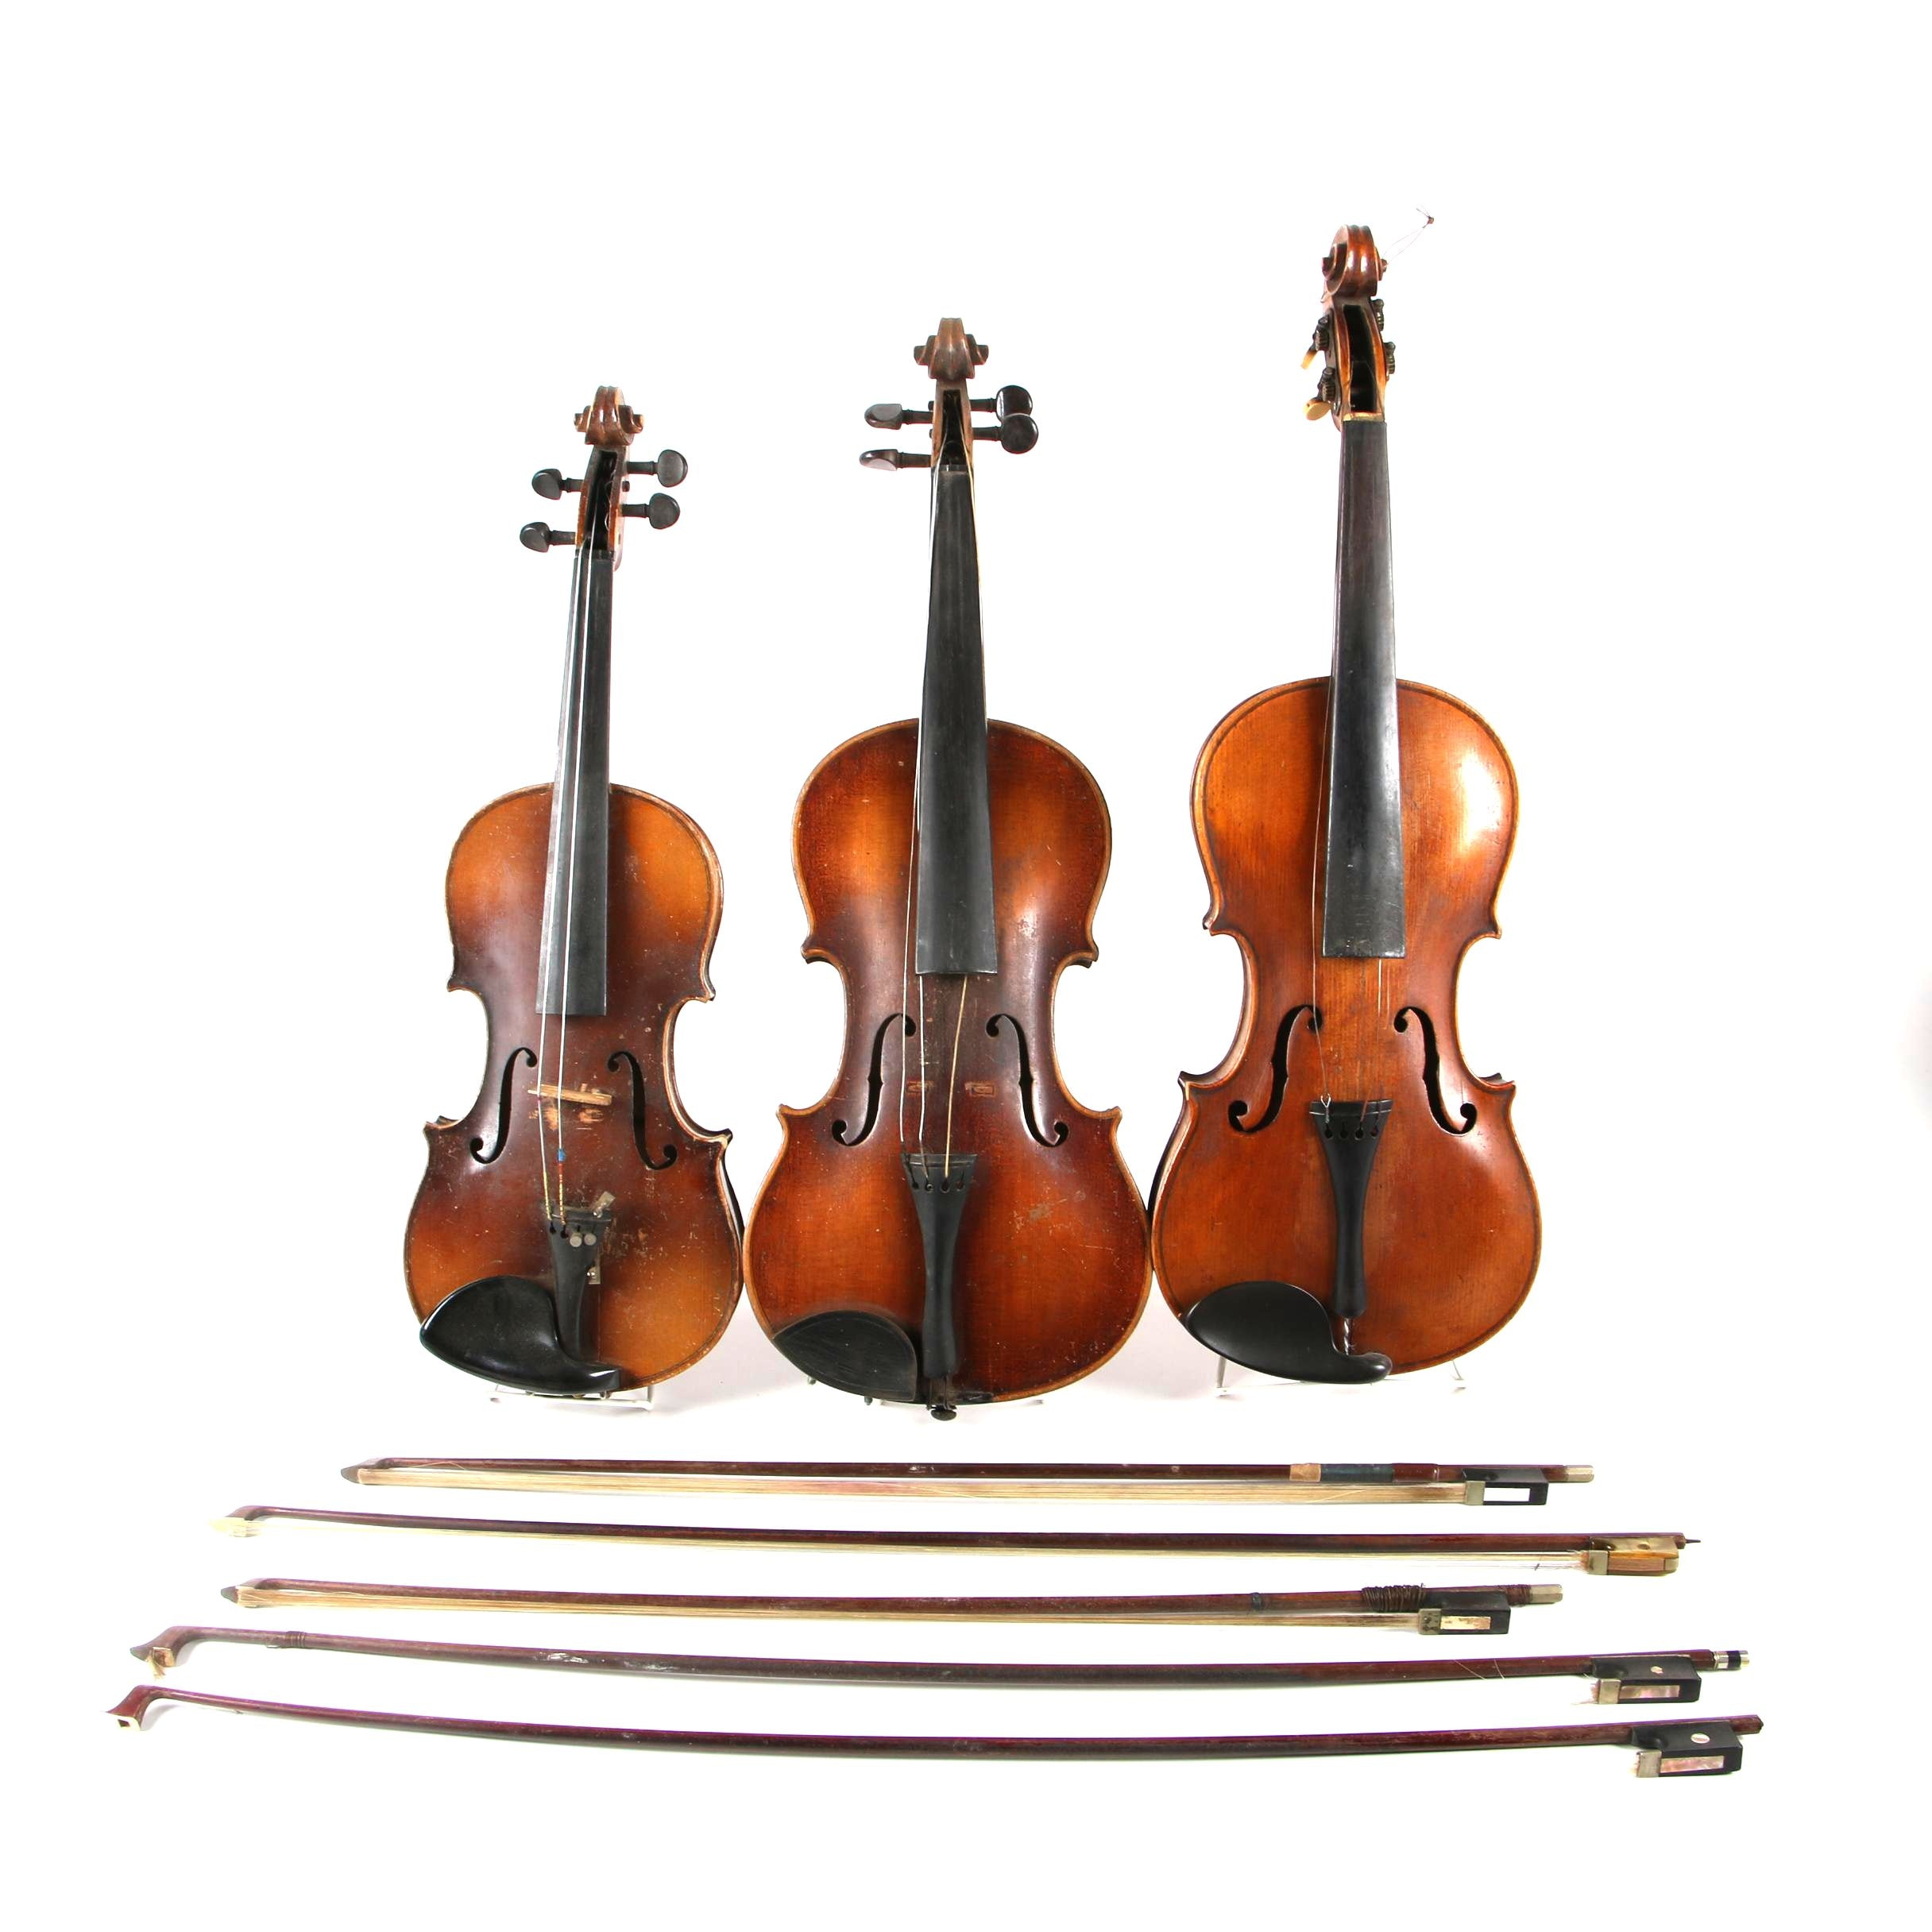 Steiner 4/4 Violins and German 1/2 Violin with Assortment of Bows